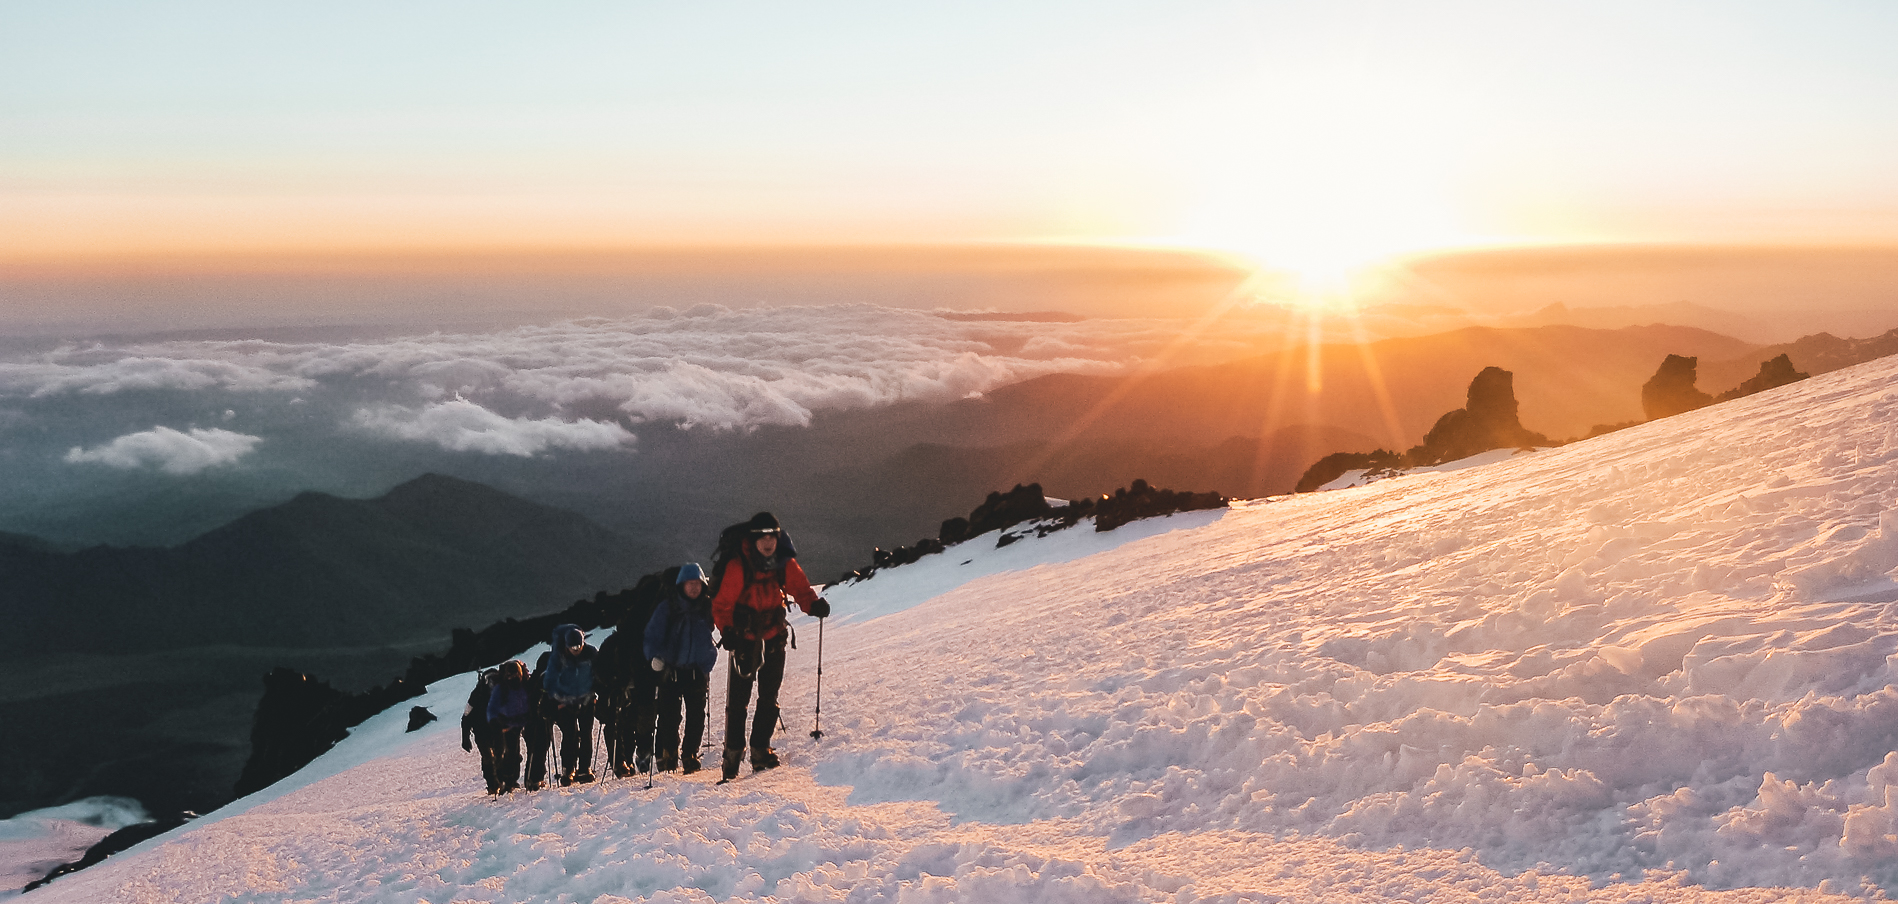 How long does it take to climb Elbrus